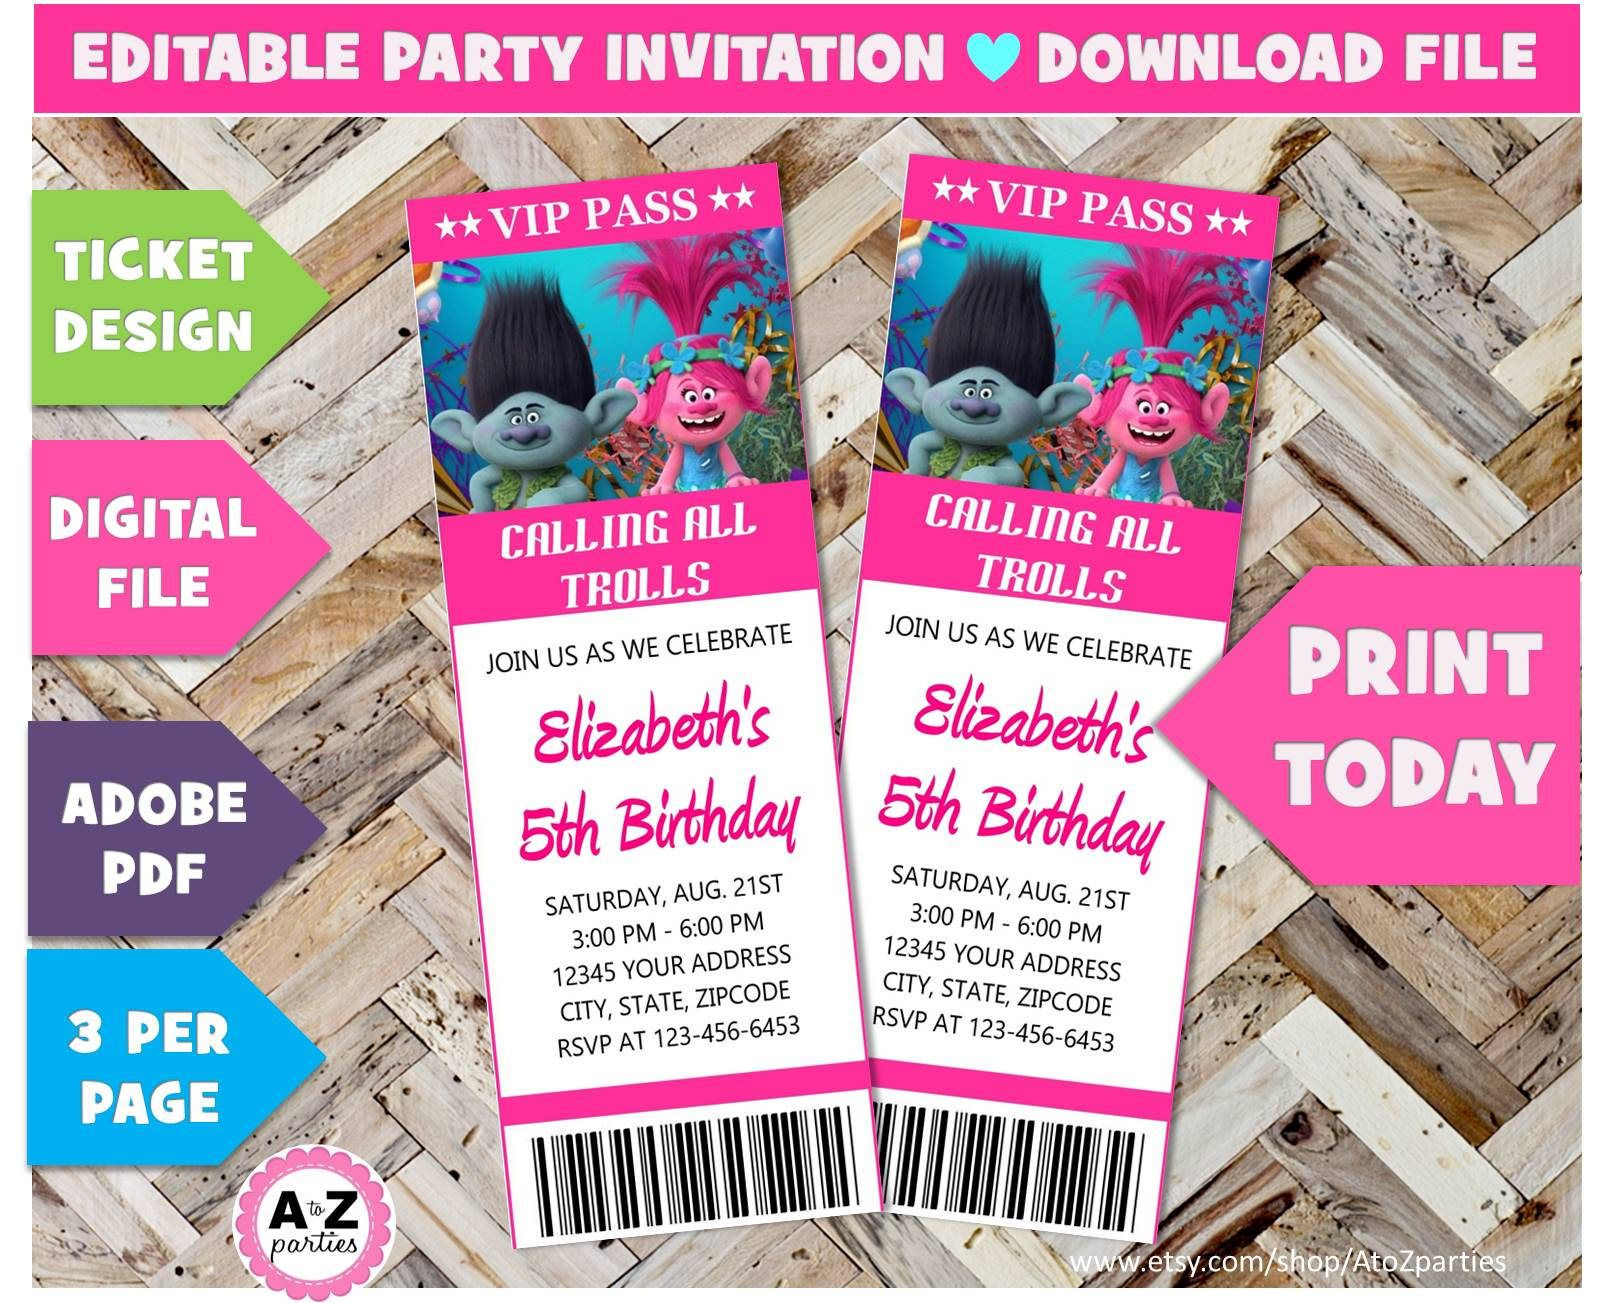 395 download sale trolls birthday invitation vip pass editable 60 off download sale trolls birthday invitation vip pass editable trolls edit with adobe trolls party ticket 3 per page instant dow stopboris Images